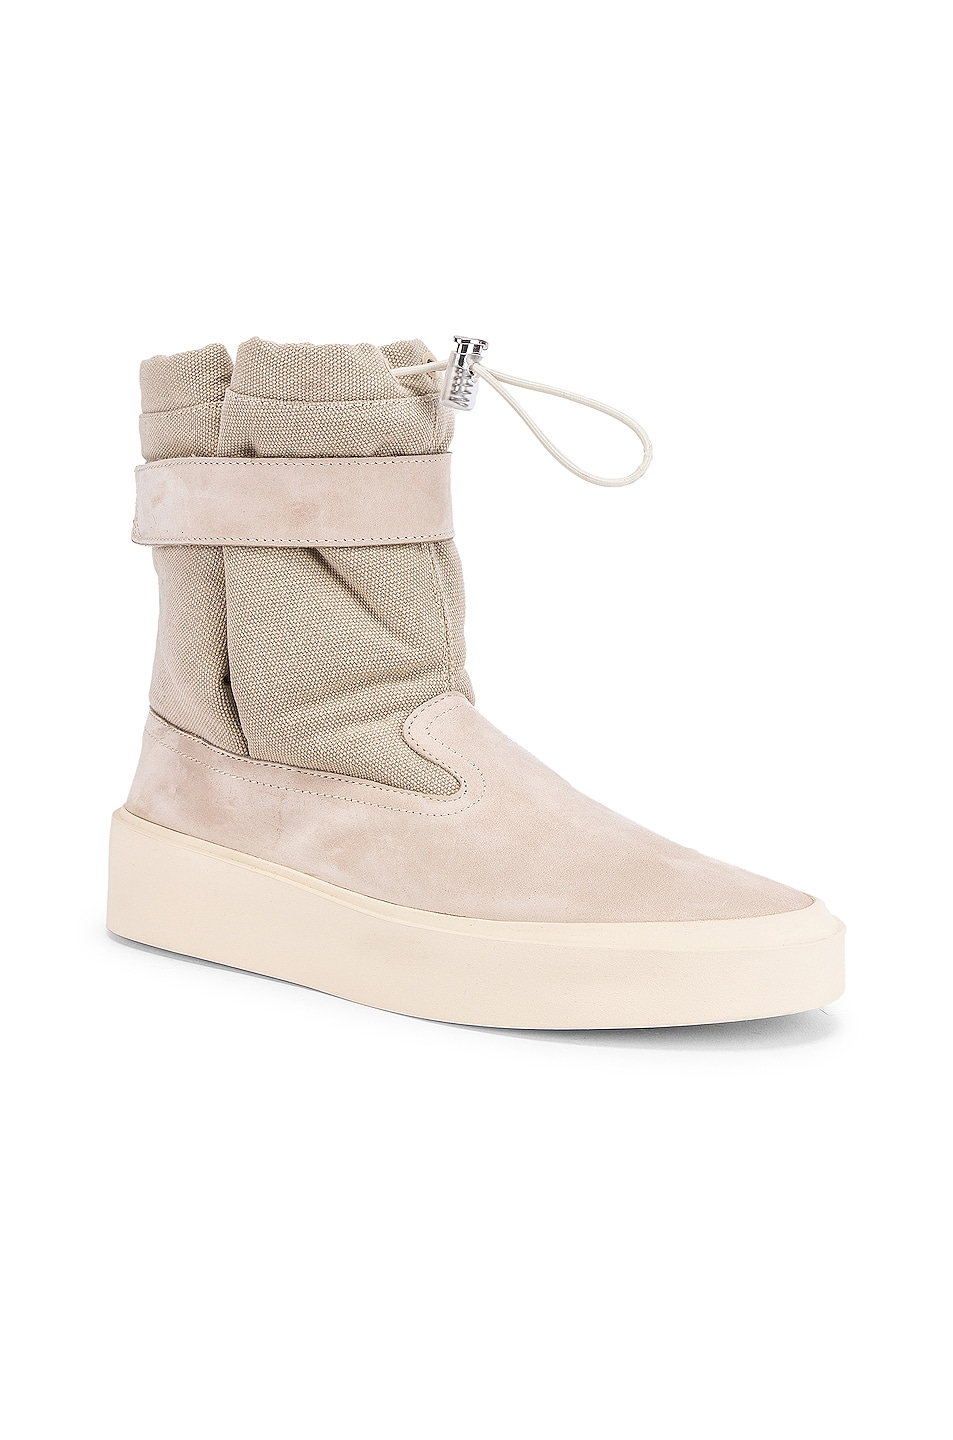 Fear Of God Sneakers Ski Lounge Boots